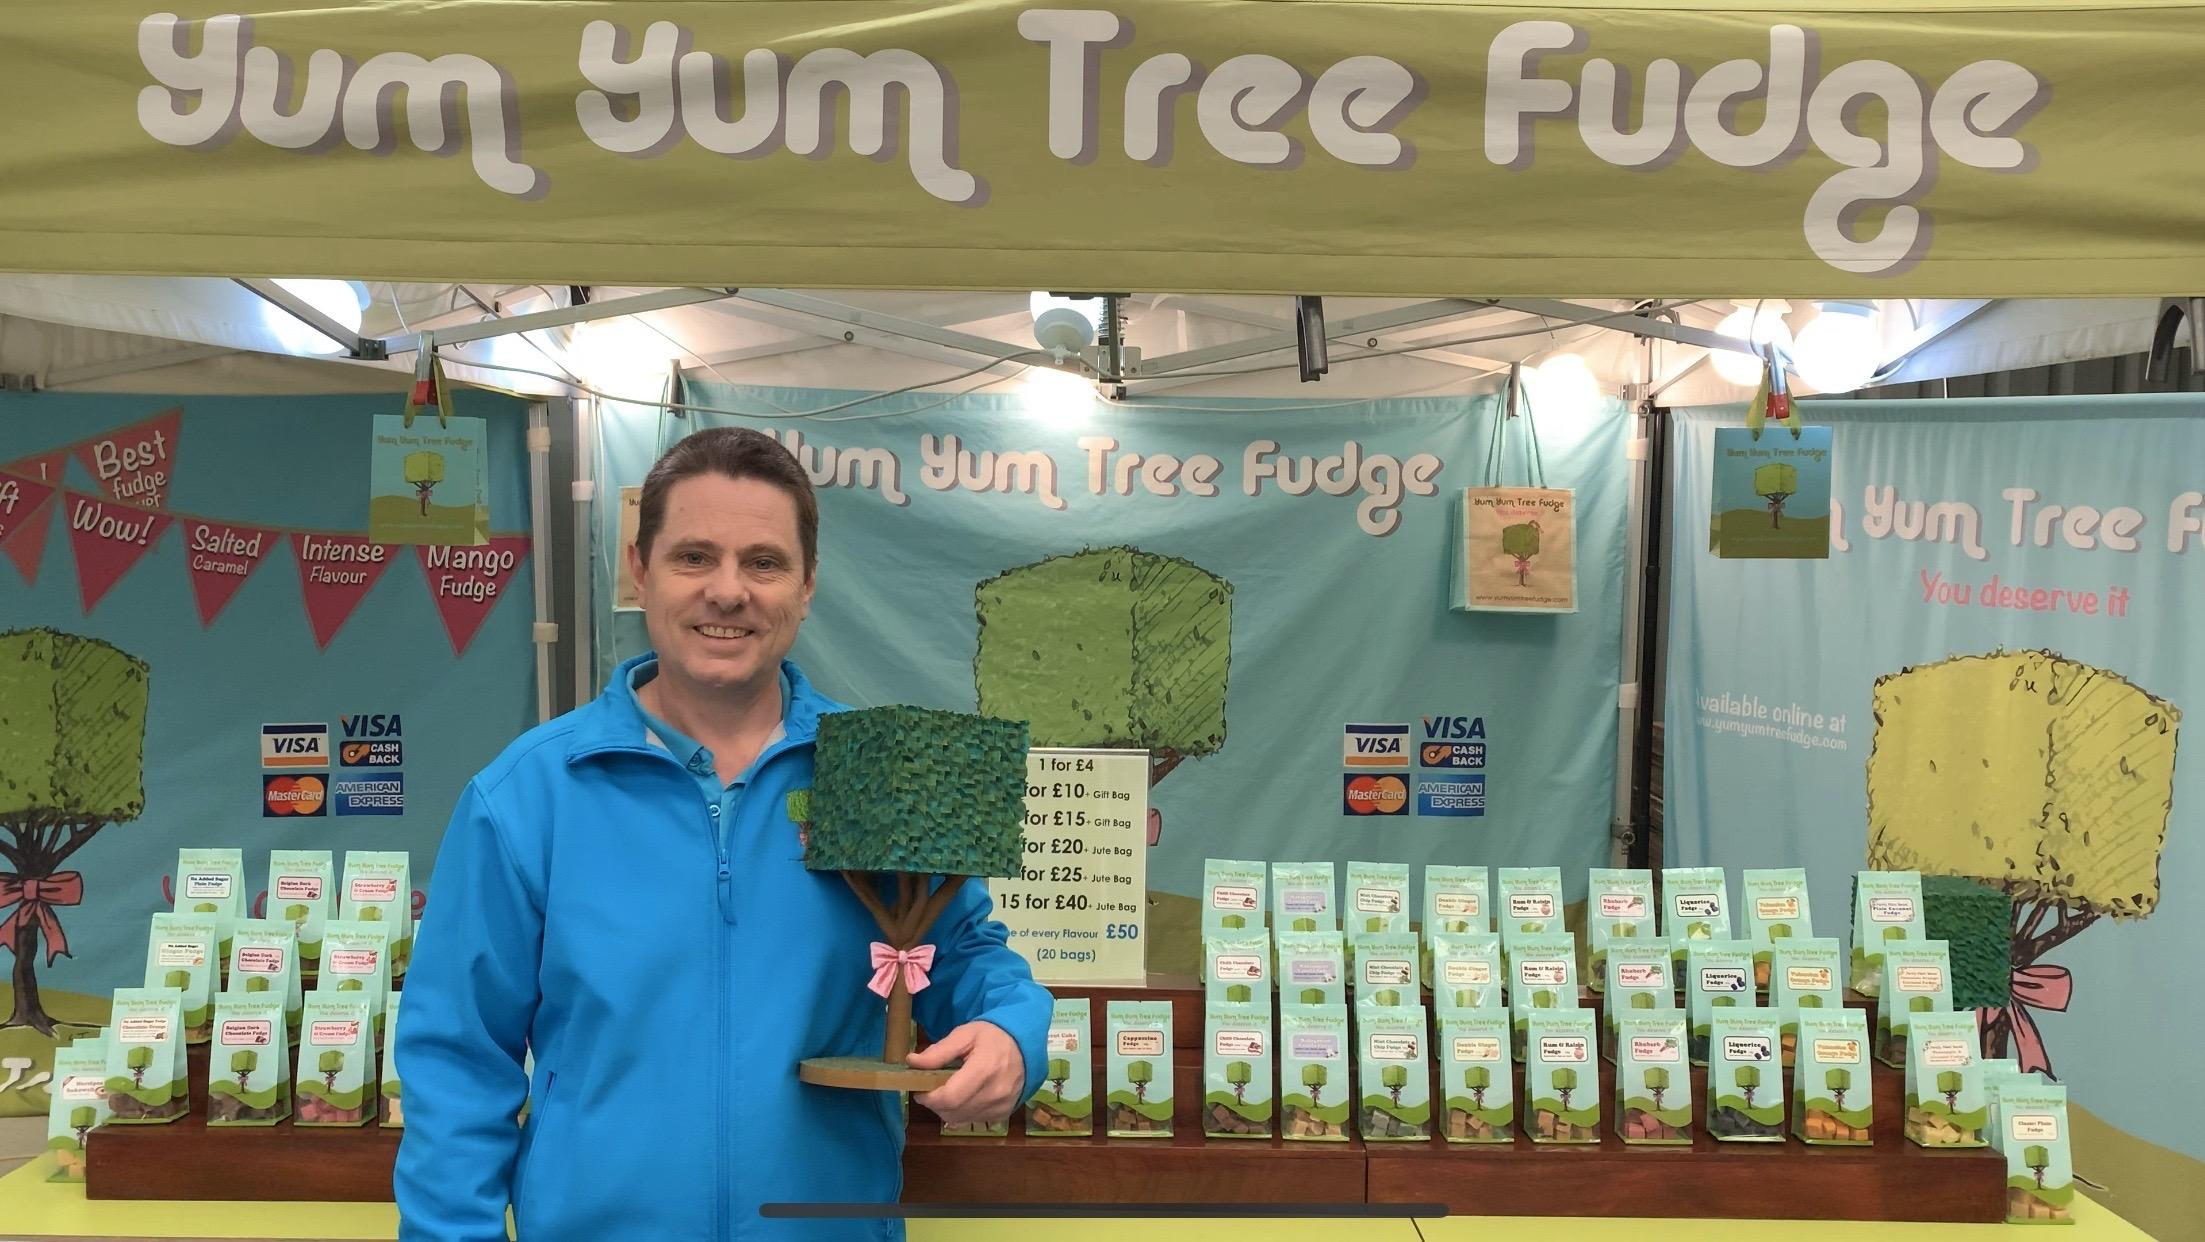 An Introduction to Yum Yum Tree Fudge